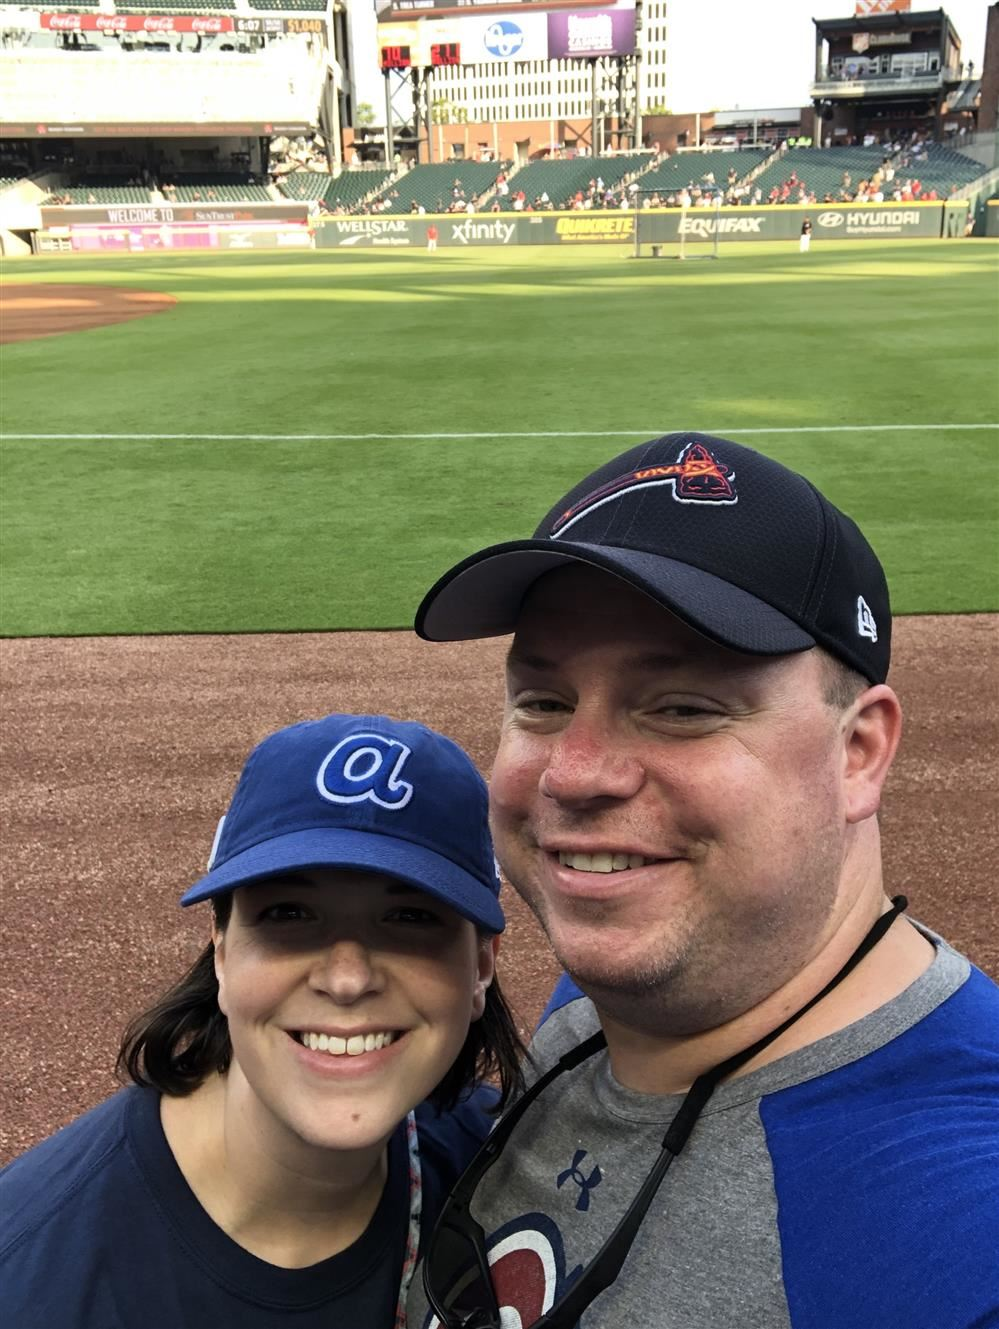 My beautiful wife, Olivia, and I at our favorite place, an Atlanta Braves baseball game